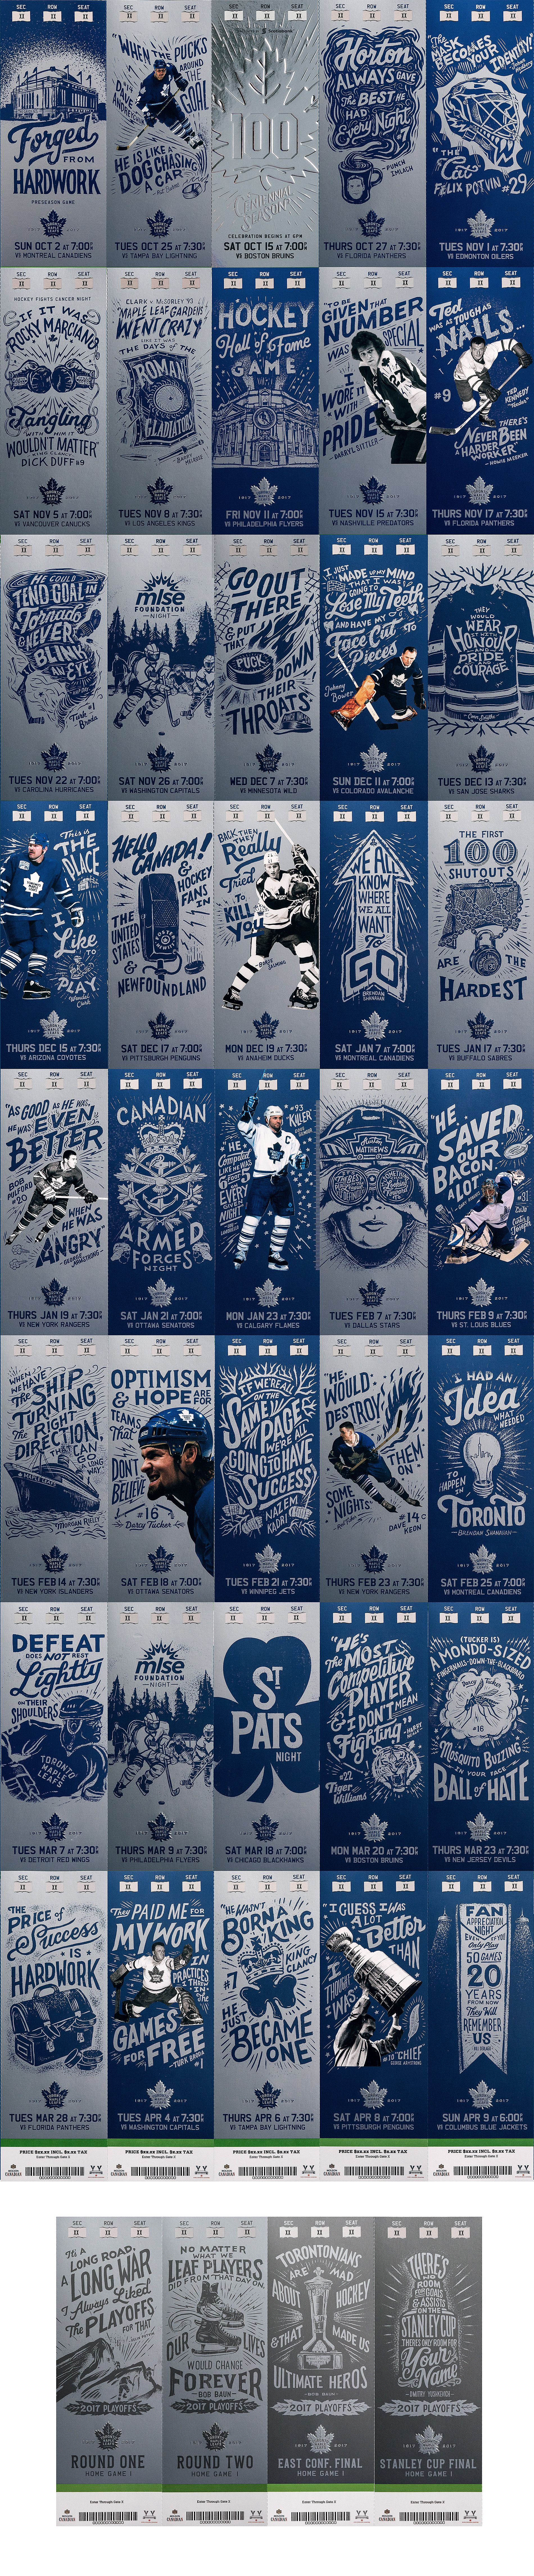 With the 100th anniversary of the Toronto Maple Leafs approaching – a feat only reached by a select few – we needed a ticket package worthy of the occasion; a keepsake that could embody this landmark season. Drawing inspiration from retro illustrated post…